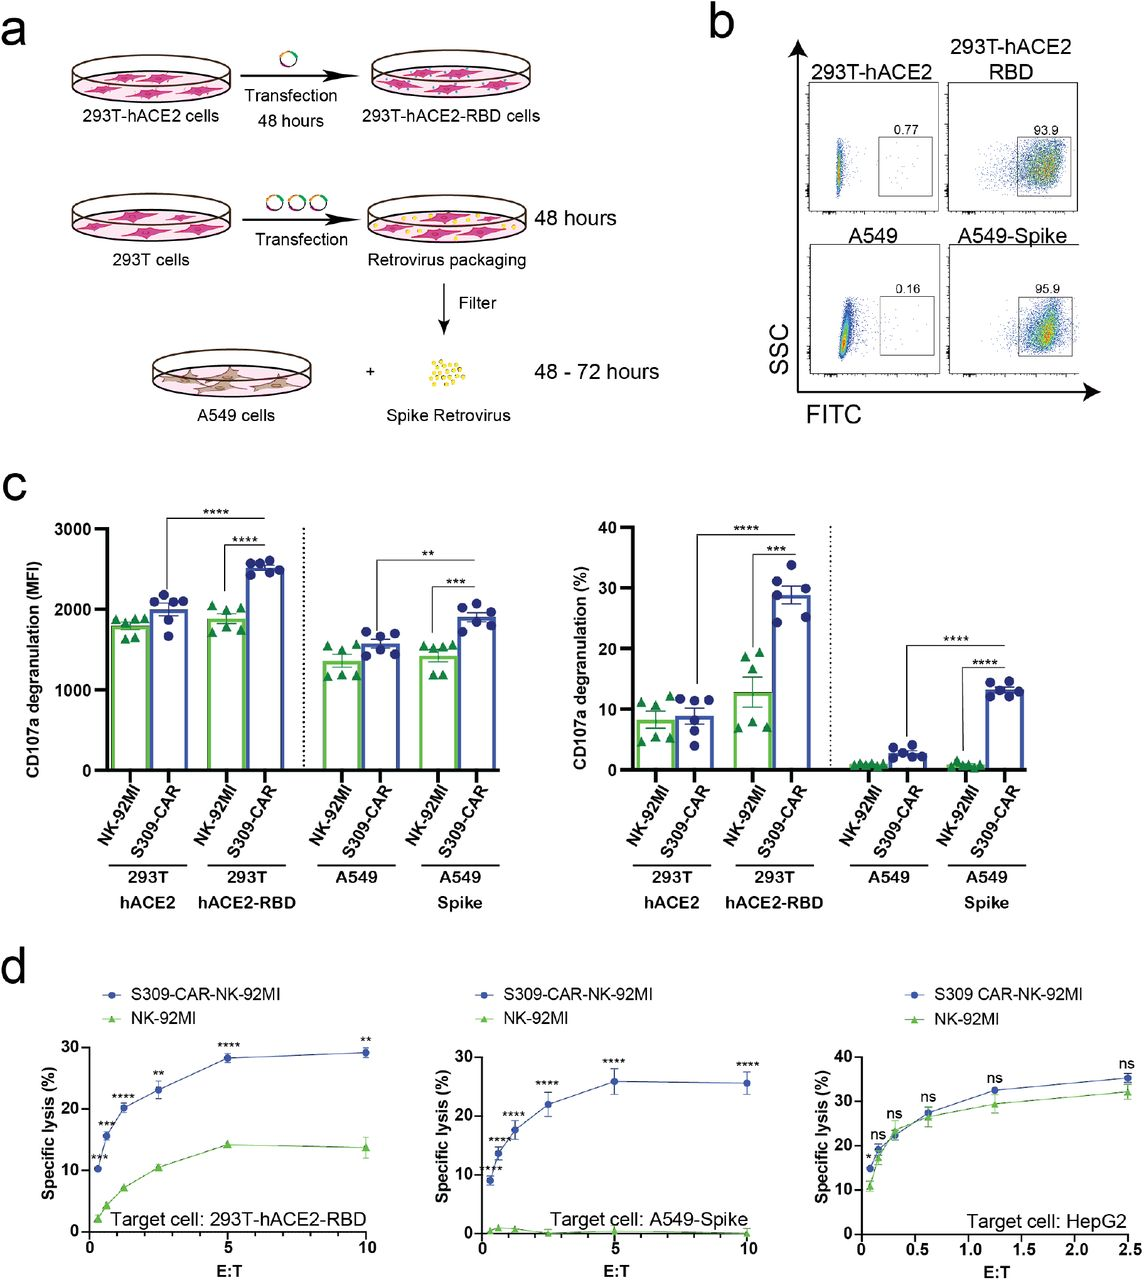 Increased CD107a surface expression and killing activity of S309-CAR-NK-92MI cells against 293T-hACE2-RBD and A549-Spike target cells. (a) Generation of transient 293T-hACE2-RBD and stable A549-Spike cell lines. 293T-hACE2 cells were transfected with RBD-containing plasmid for 48 hours. Transfected 293T-hACE2-RBD cells were then harvested. For the generation of A549-Spike, 293T cells were transfected with the retrovirus transfection system for 48 hours. The spike retrovirus was filtered and transduced into A549 cells for an additional 48-72 hours. ( b ) Representative dot plots showing the expressions of RBD or Spike in 293T-hACE2 or A549 cells, respectively. 293T-hACE2-RBD and A549-Spike cells were stained with anti-RBD and the expressions were confirmed by flow cytometry. The stable A549-Spike cell line was then sorted to achieve high levels of spike expression. ( c ) Quantitative data of CD107a surface expression assay of S309-CAR-NK against 293T-hACE2-RBD or A549-Spike cell lines. Briefly, S309-CAR-NK-92MI cells were cocultured with either 293T-hACE2-RBD cells, A549-Spike cells, stimulated with PMA/Ionomycin, or incubated alone for 2 hours at 37°C. Cells were then harvested and stained for CAR F(ab)2 domain [IgG (H+L)] and CD107a. Data represent mean ± SEM from two experiments. ( d ) 4-hour standard Cr 51 release assay of S309-CAR-NK-92MI and parental NK-92MI cells against various target cell lines. 293T-hACE2-RBD, A549-Spike, and HepG2 cell lines were used as target cells for S309-CAR-NK and NK-92MI. Experimental groups were performed in triplicates. Error bars represent mean ± SEM from at least two independent experiments. Unpaired Student's t test was used for both panels ( c ) and ( d ). ns p > 0.05, * p